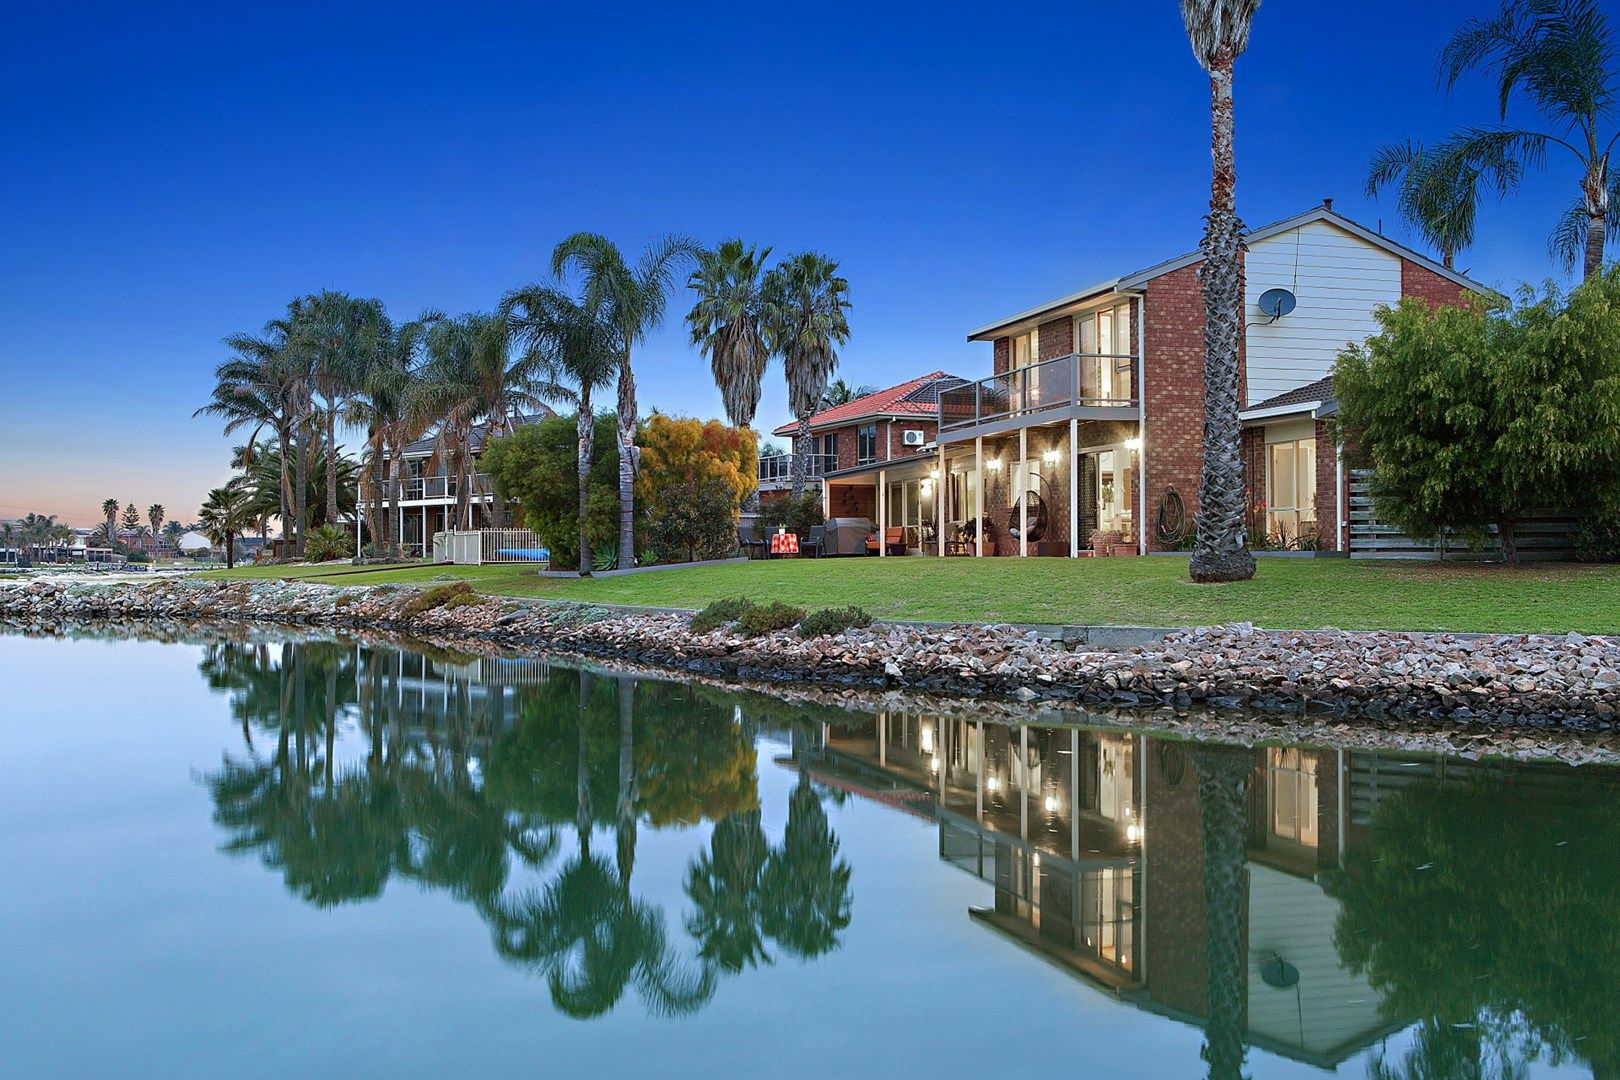 22/1 Canberra Street, Patterson Lakes VIC 3197, Image 0